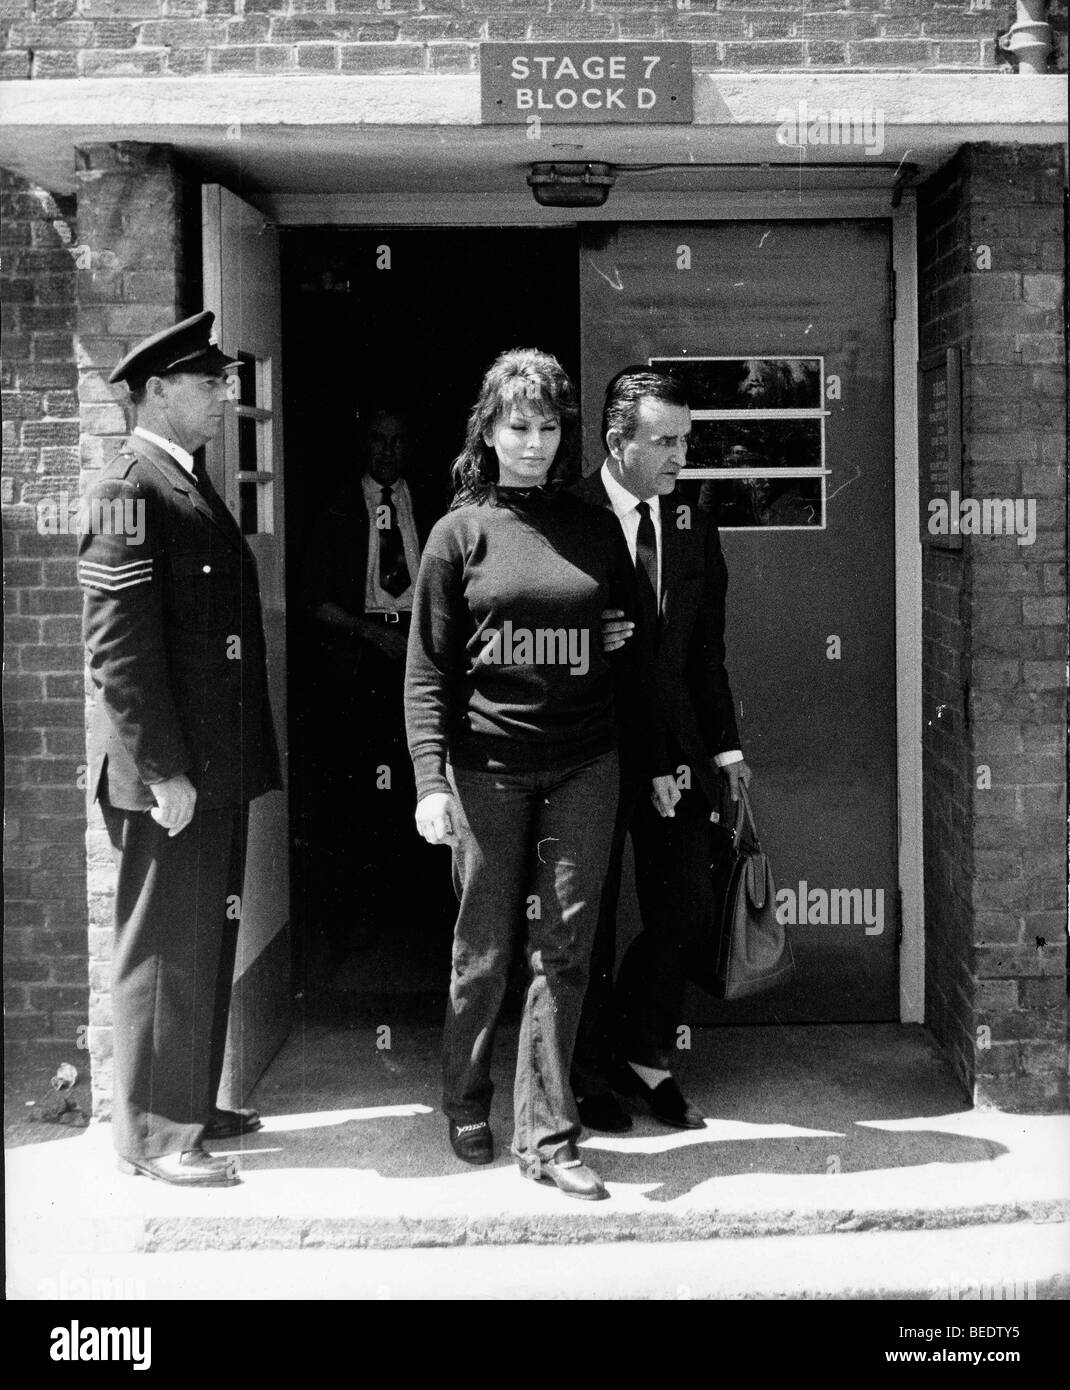 Actress Sophia Loren leaving Estree studios during a police investigation - Stock Image